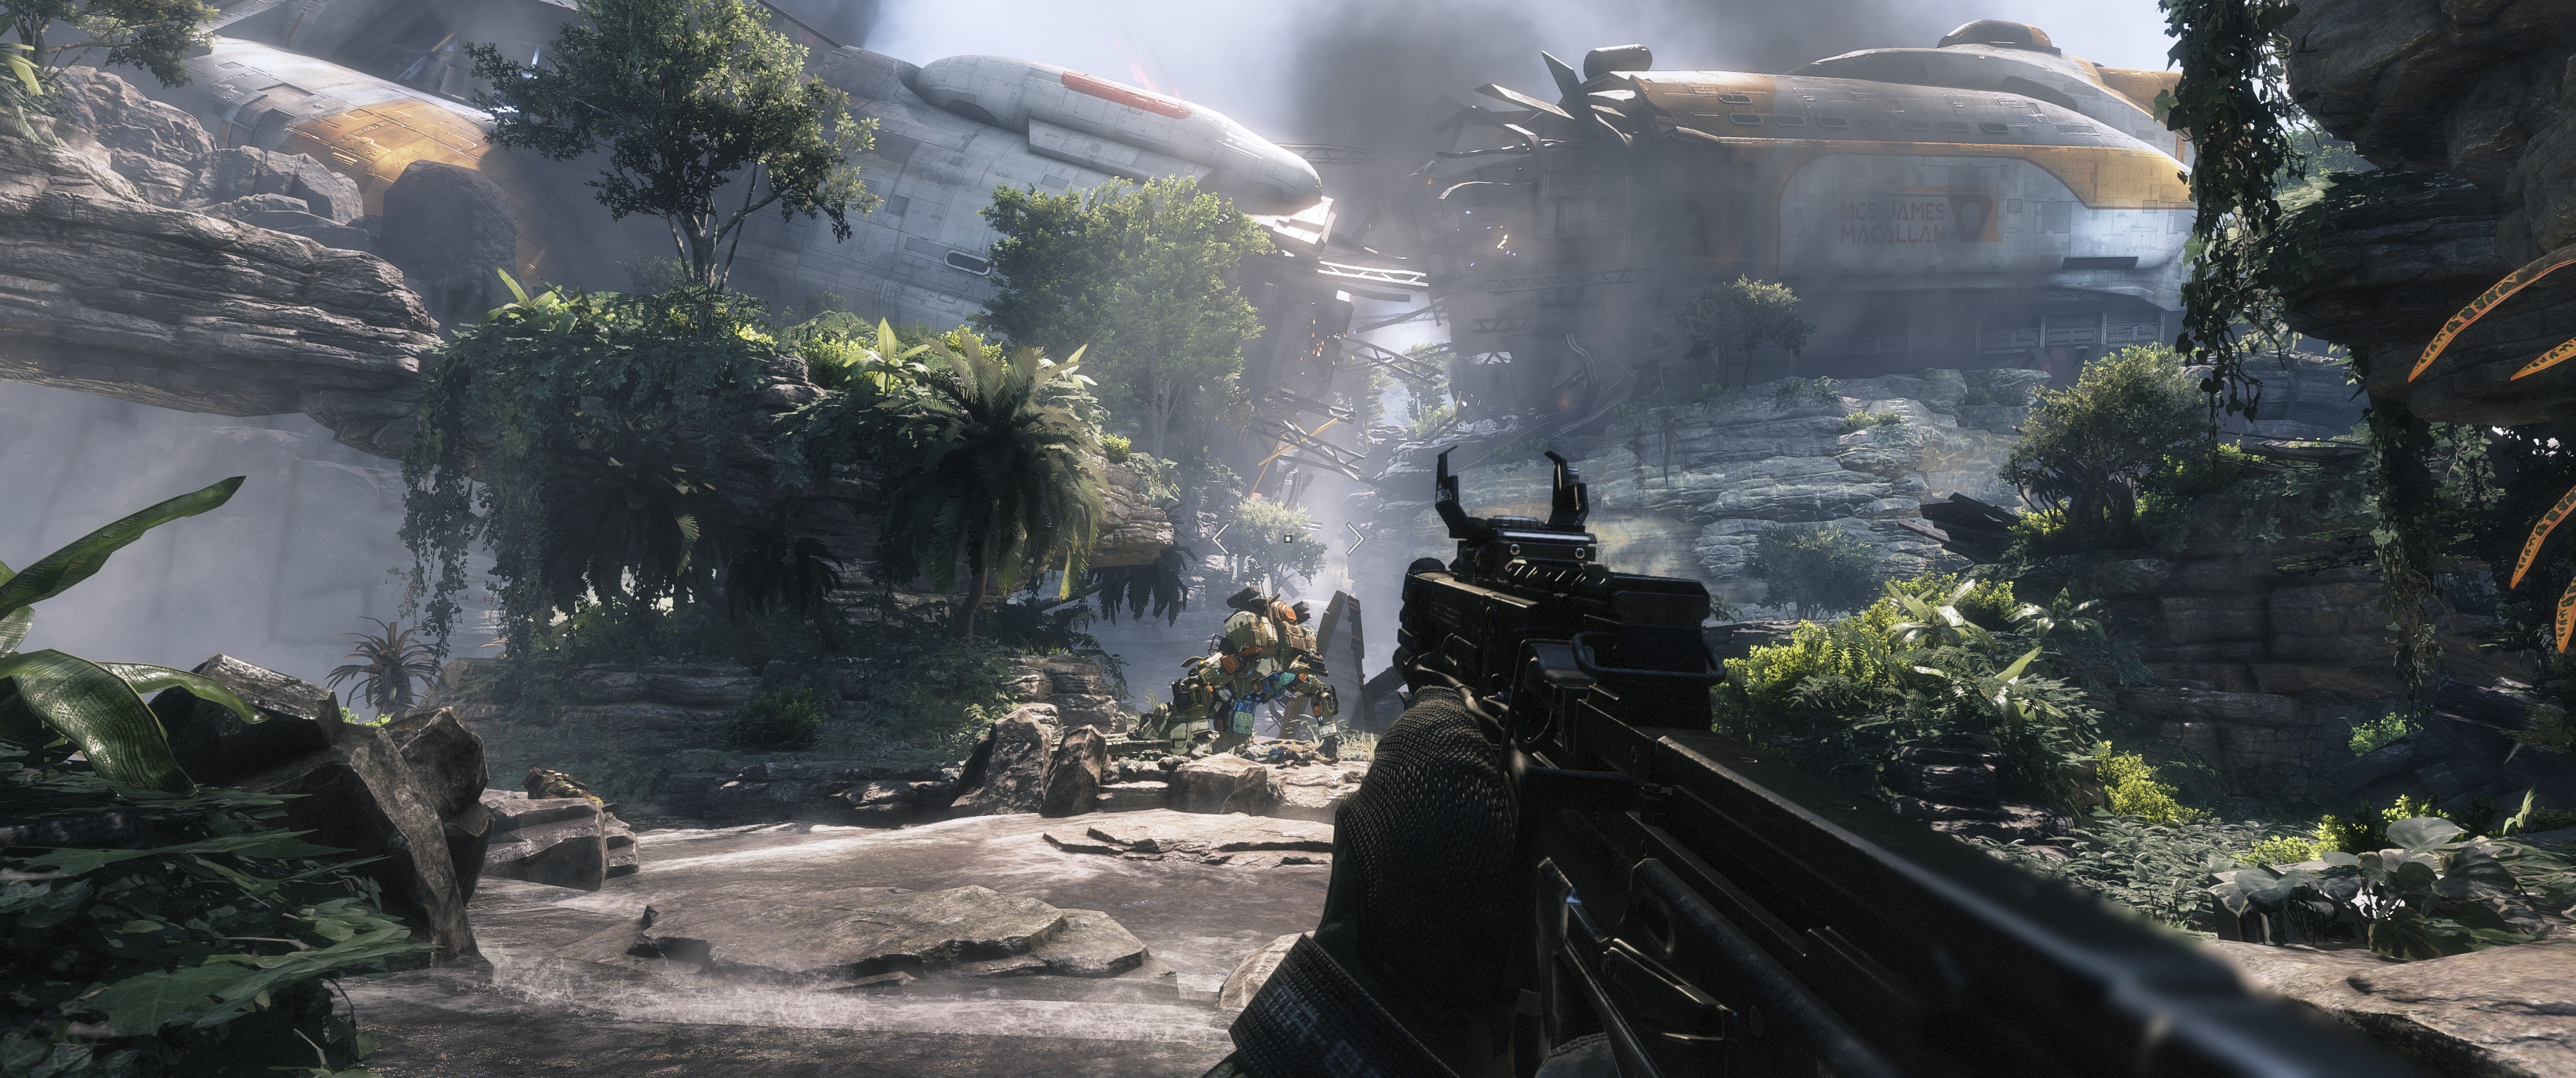 Titanfall 2 Benchmarks | AnandTech Forums: Technology